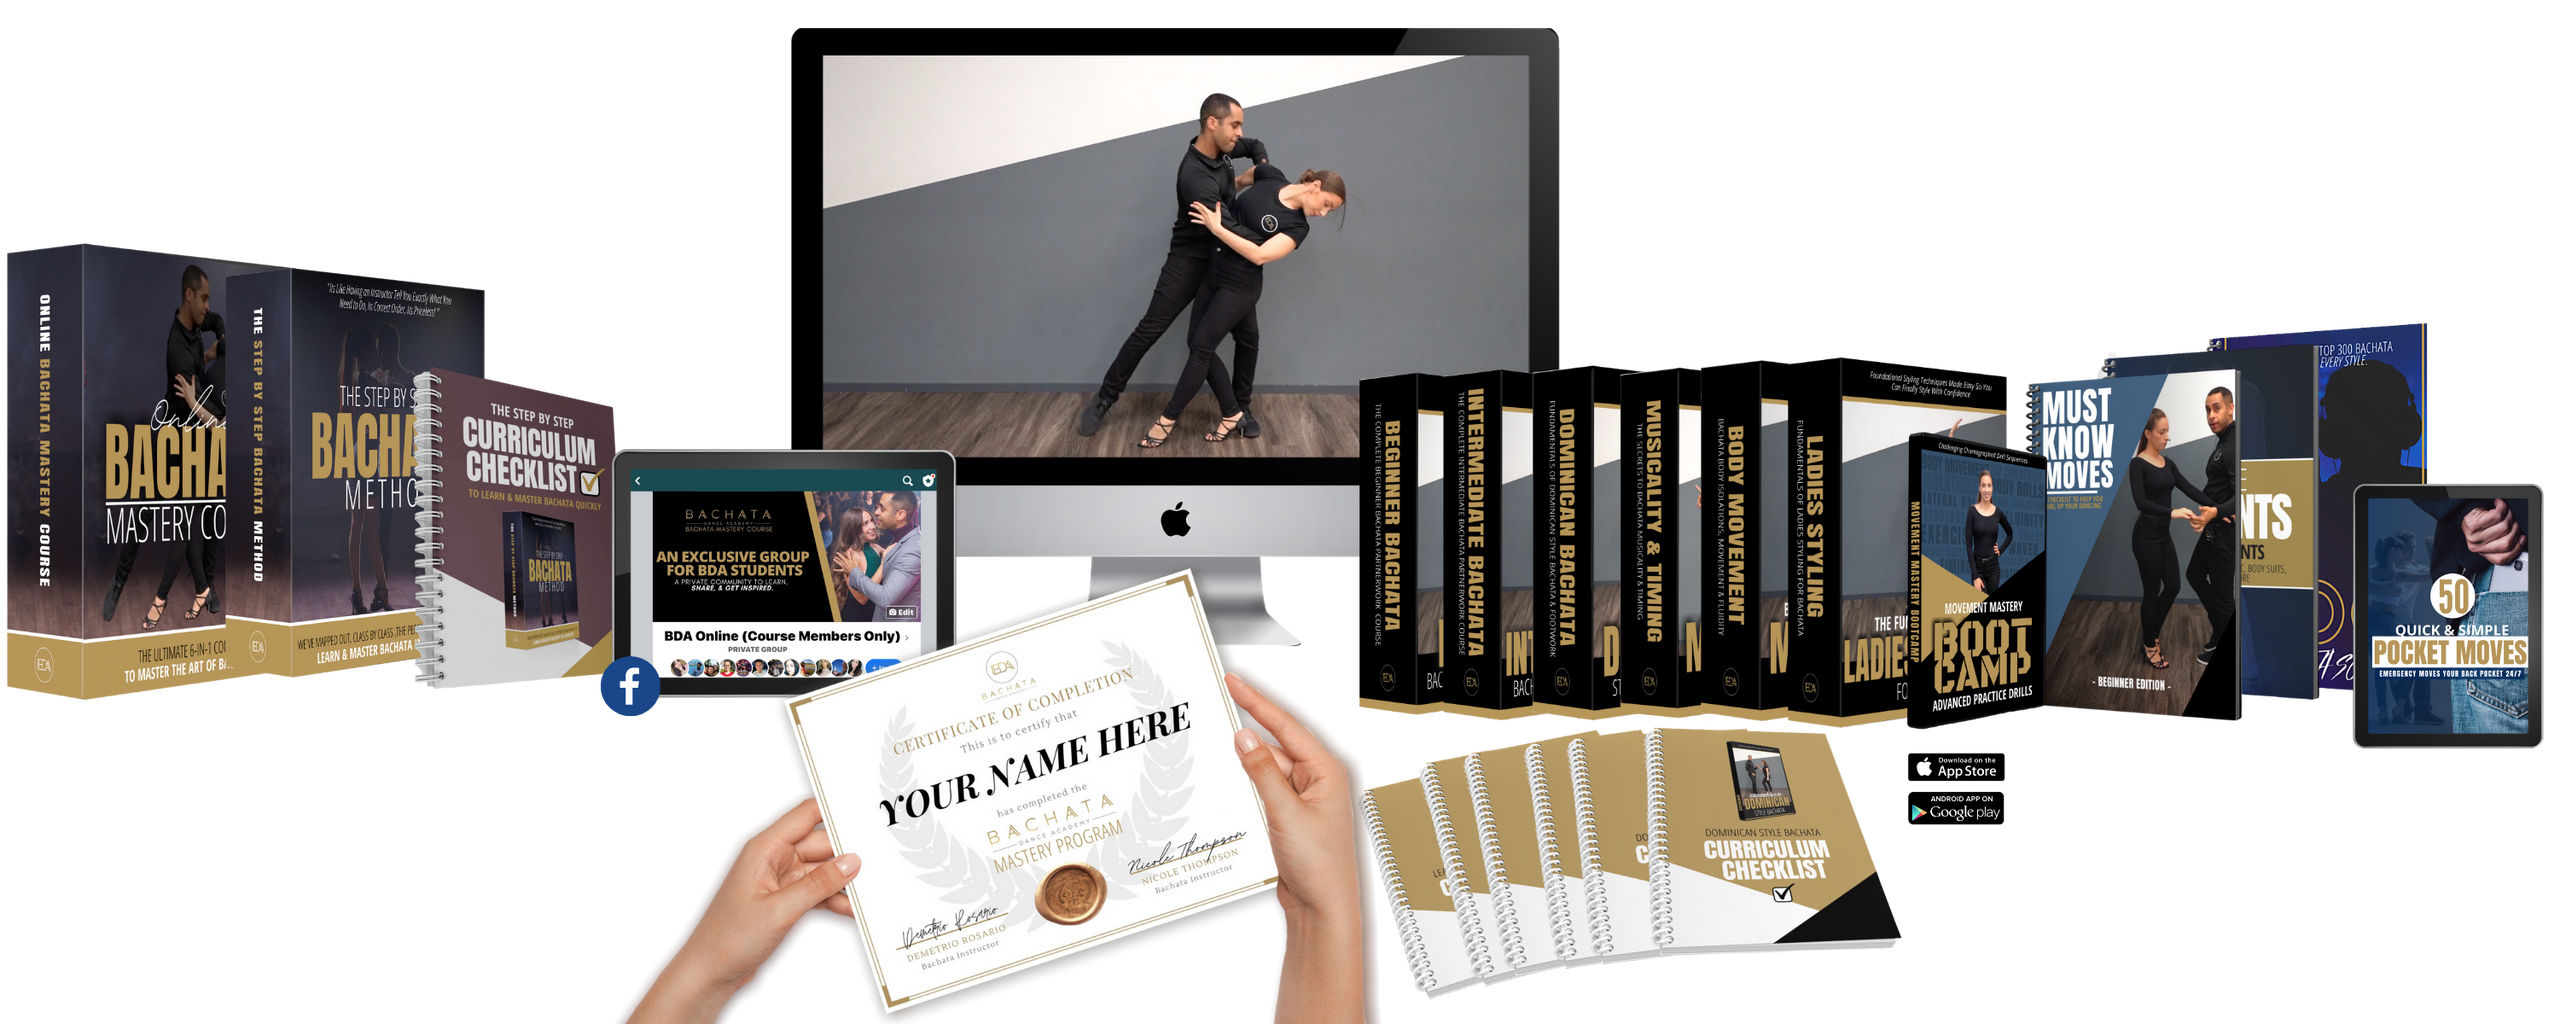 The Complete Bachata Mastery Course Online - What You'll Get